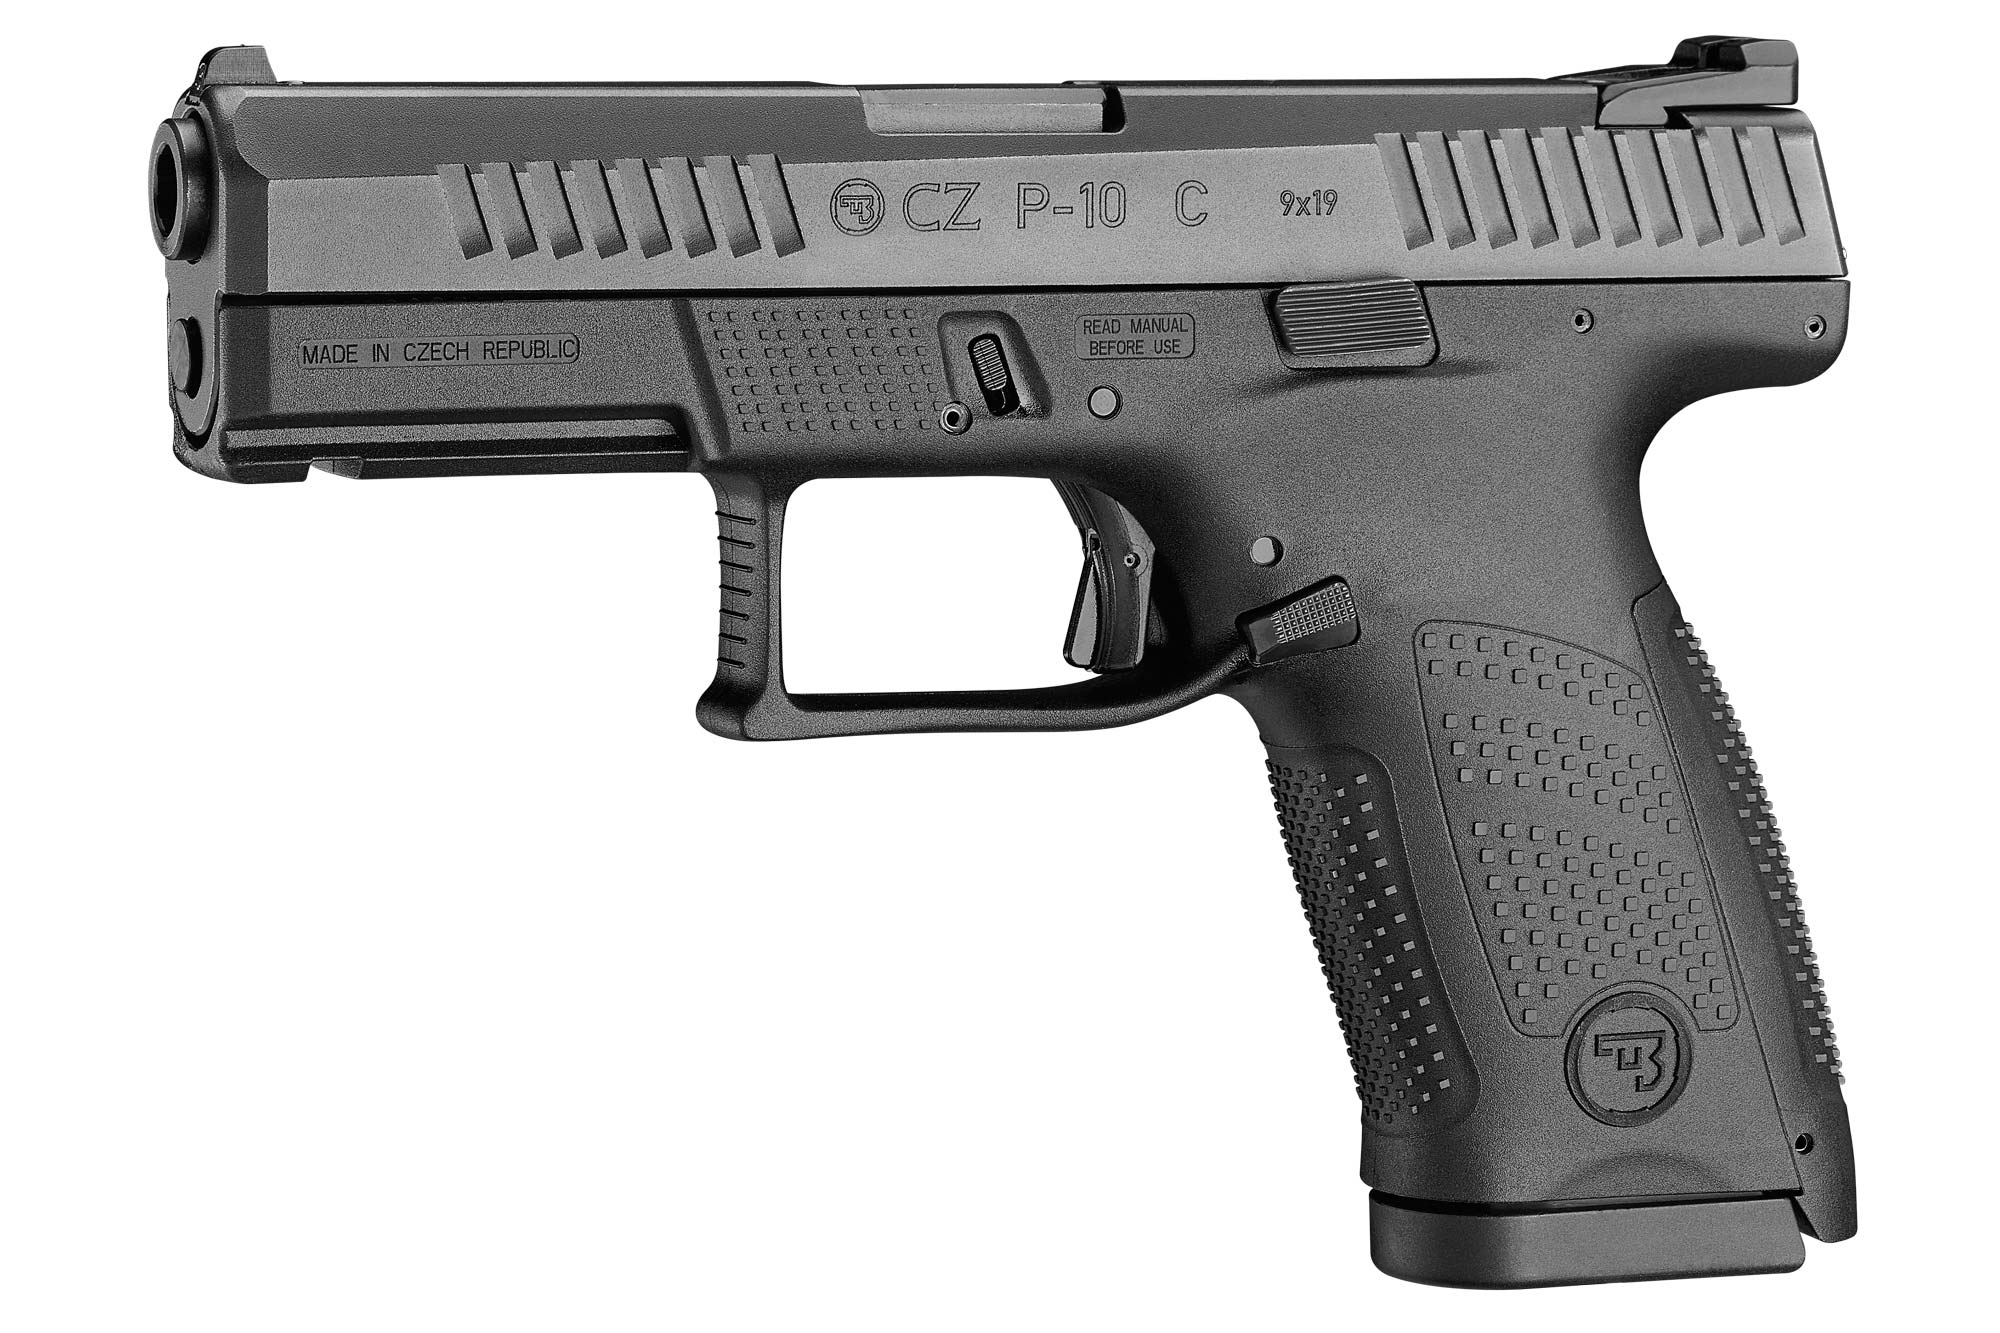 Polymer pistol CZ P-10 C in 9 mm Luger